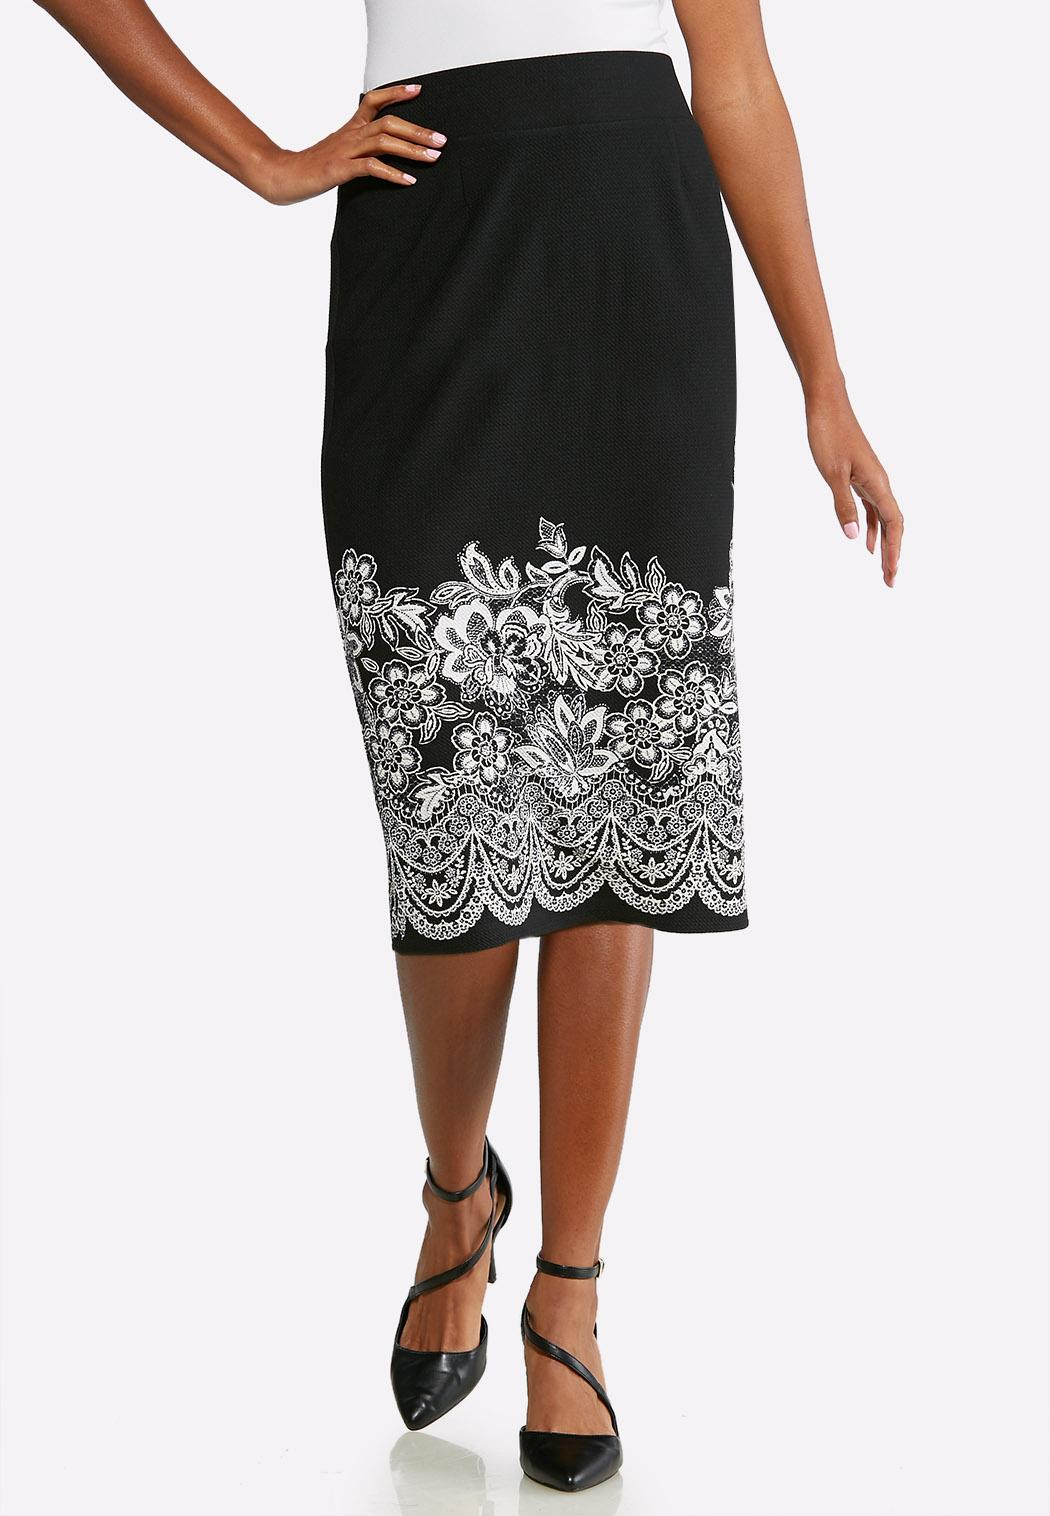 6610288e898 Plus Size Textured Floral Pencil Skirt Below The Knee Cato Fashions